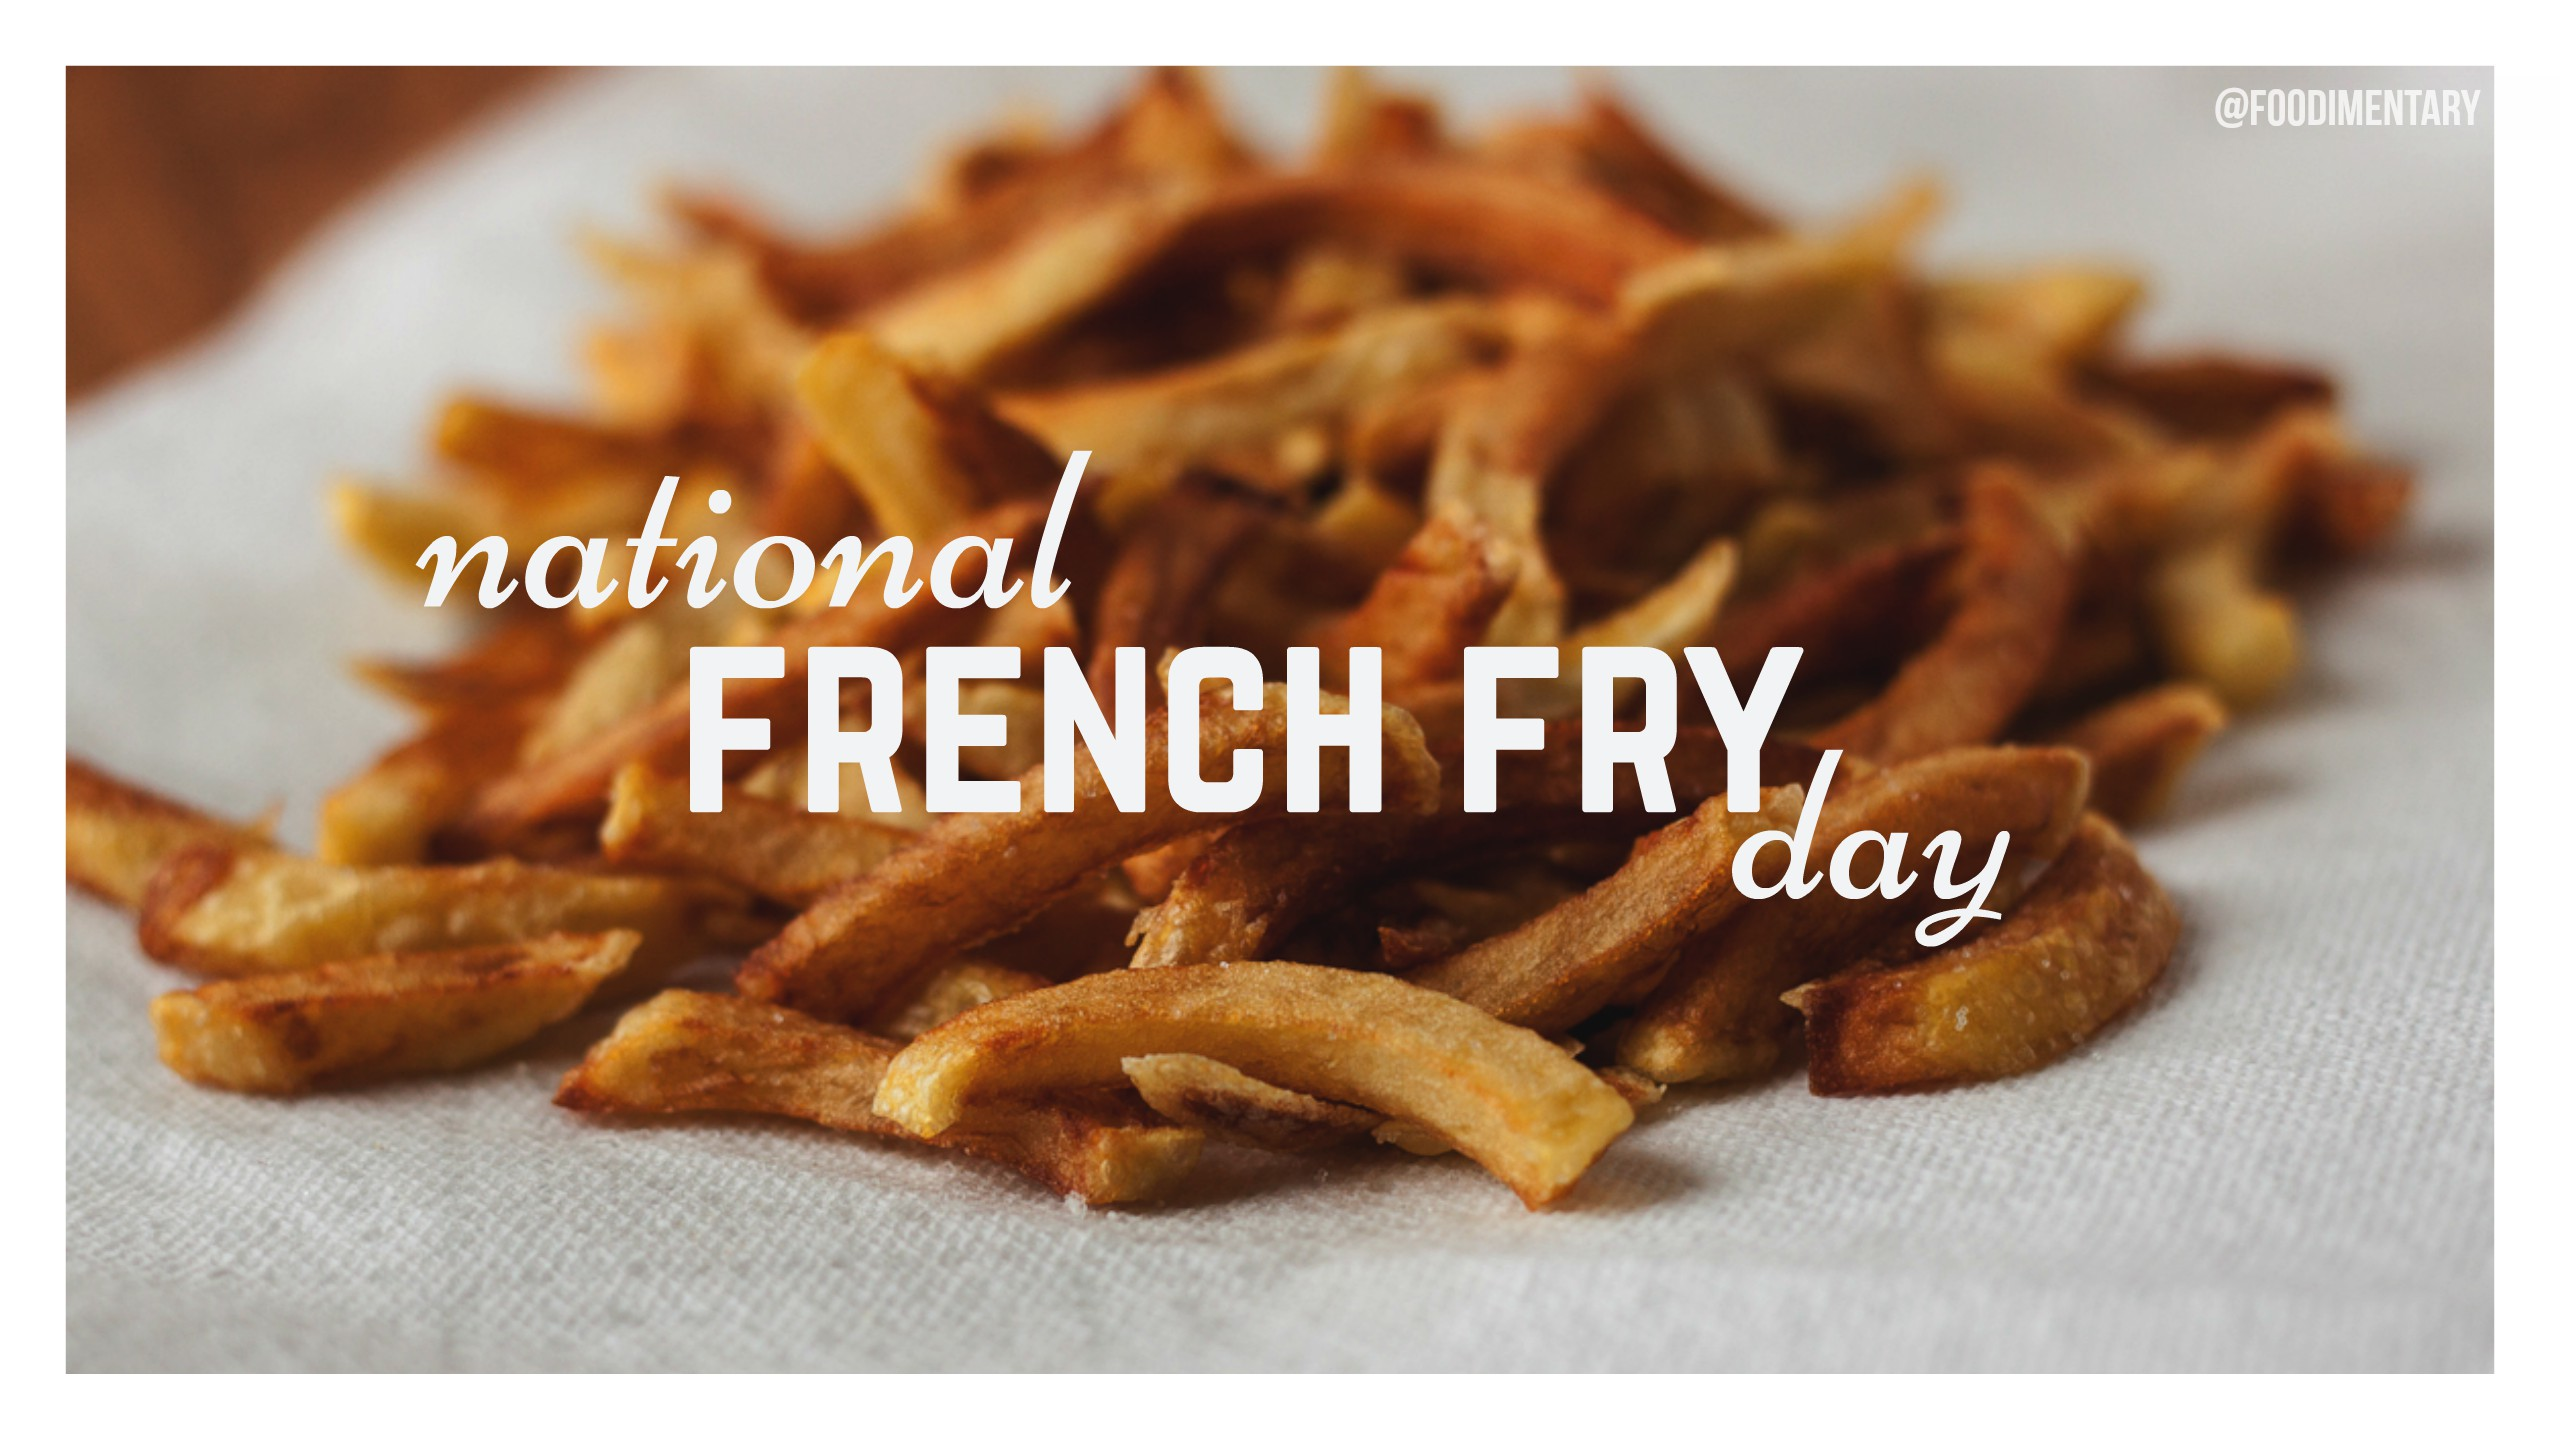 national french fry day - photo #26